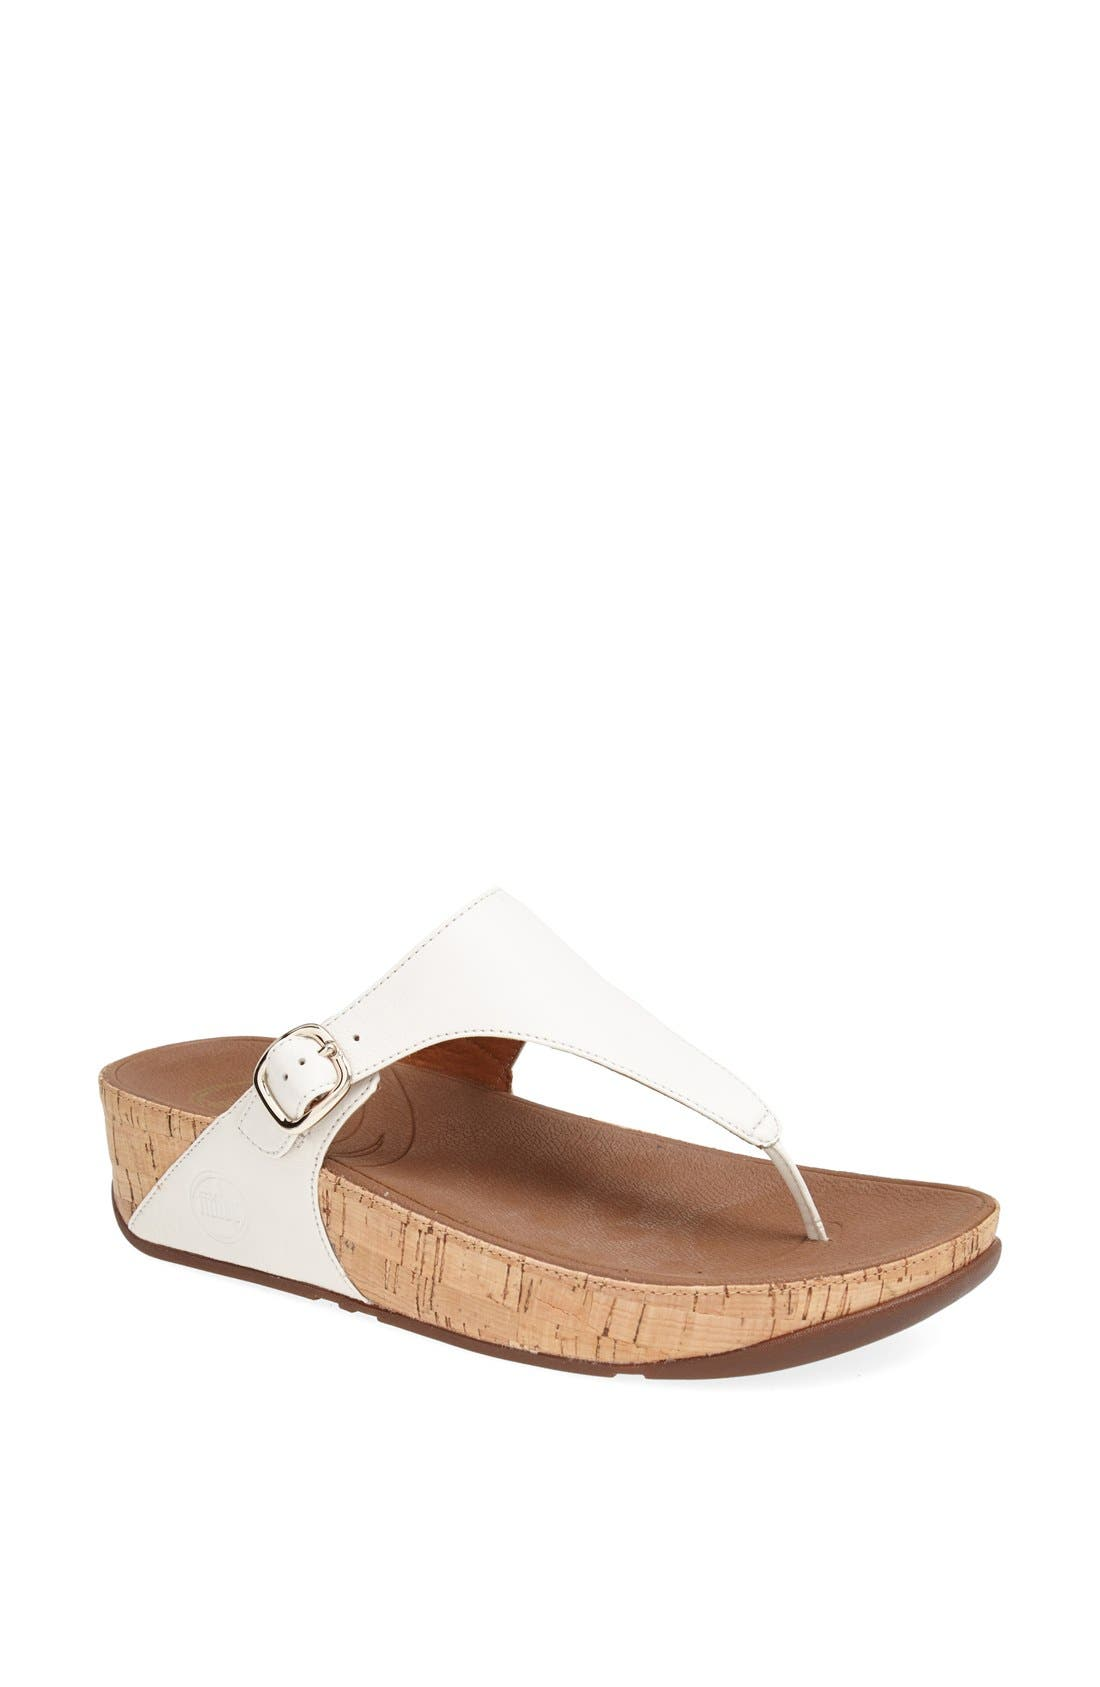 Alternate Image 1 Selected - FitFlop 'The Skinny™' Sandal